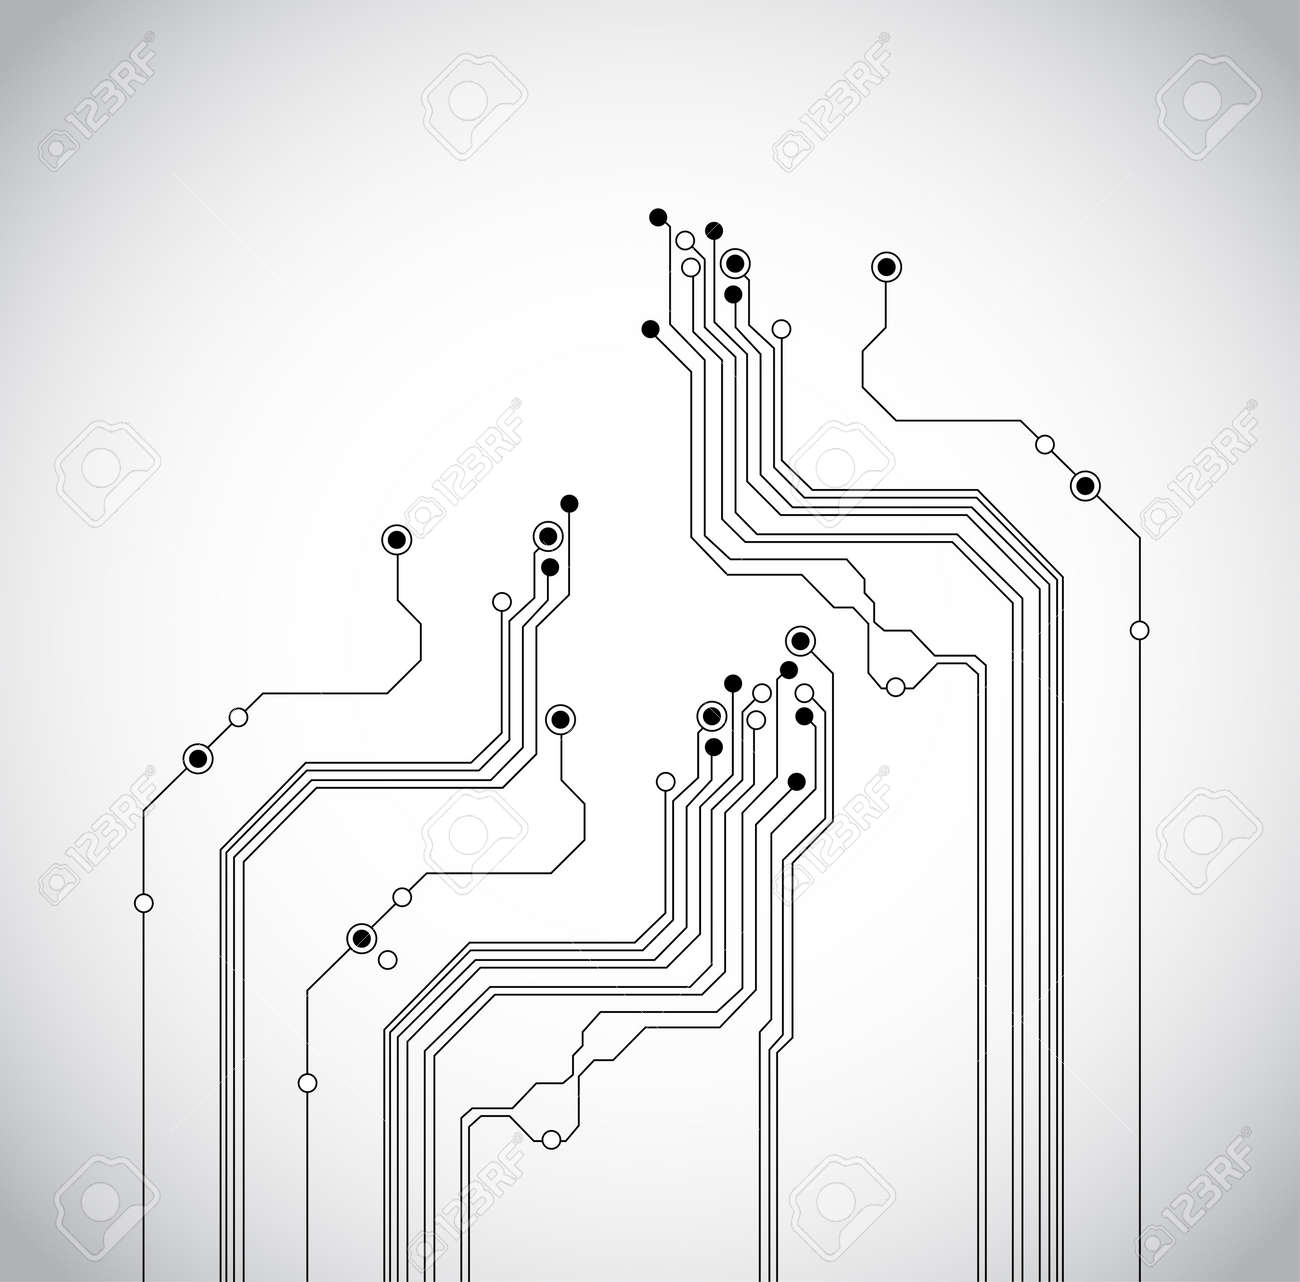 Abstract Circuit Board Background Texture Stock Photo Picture And 44590807